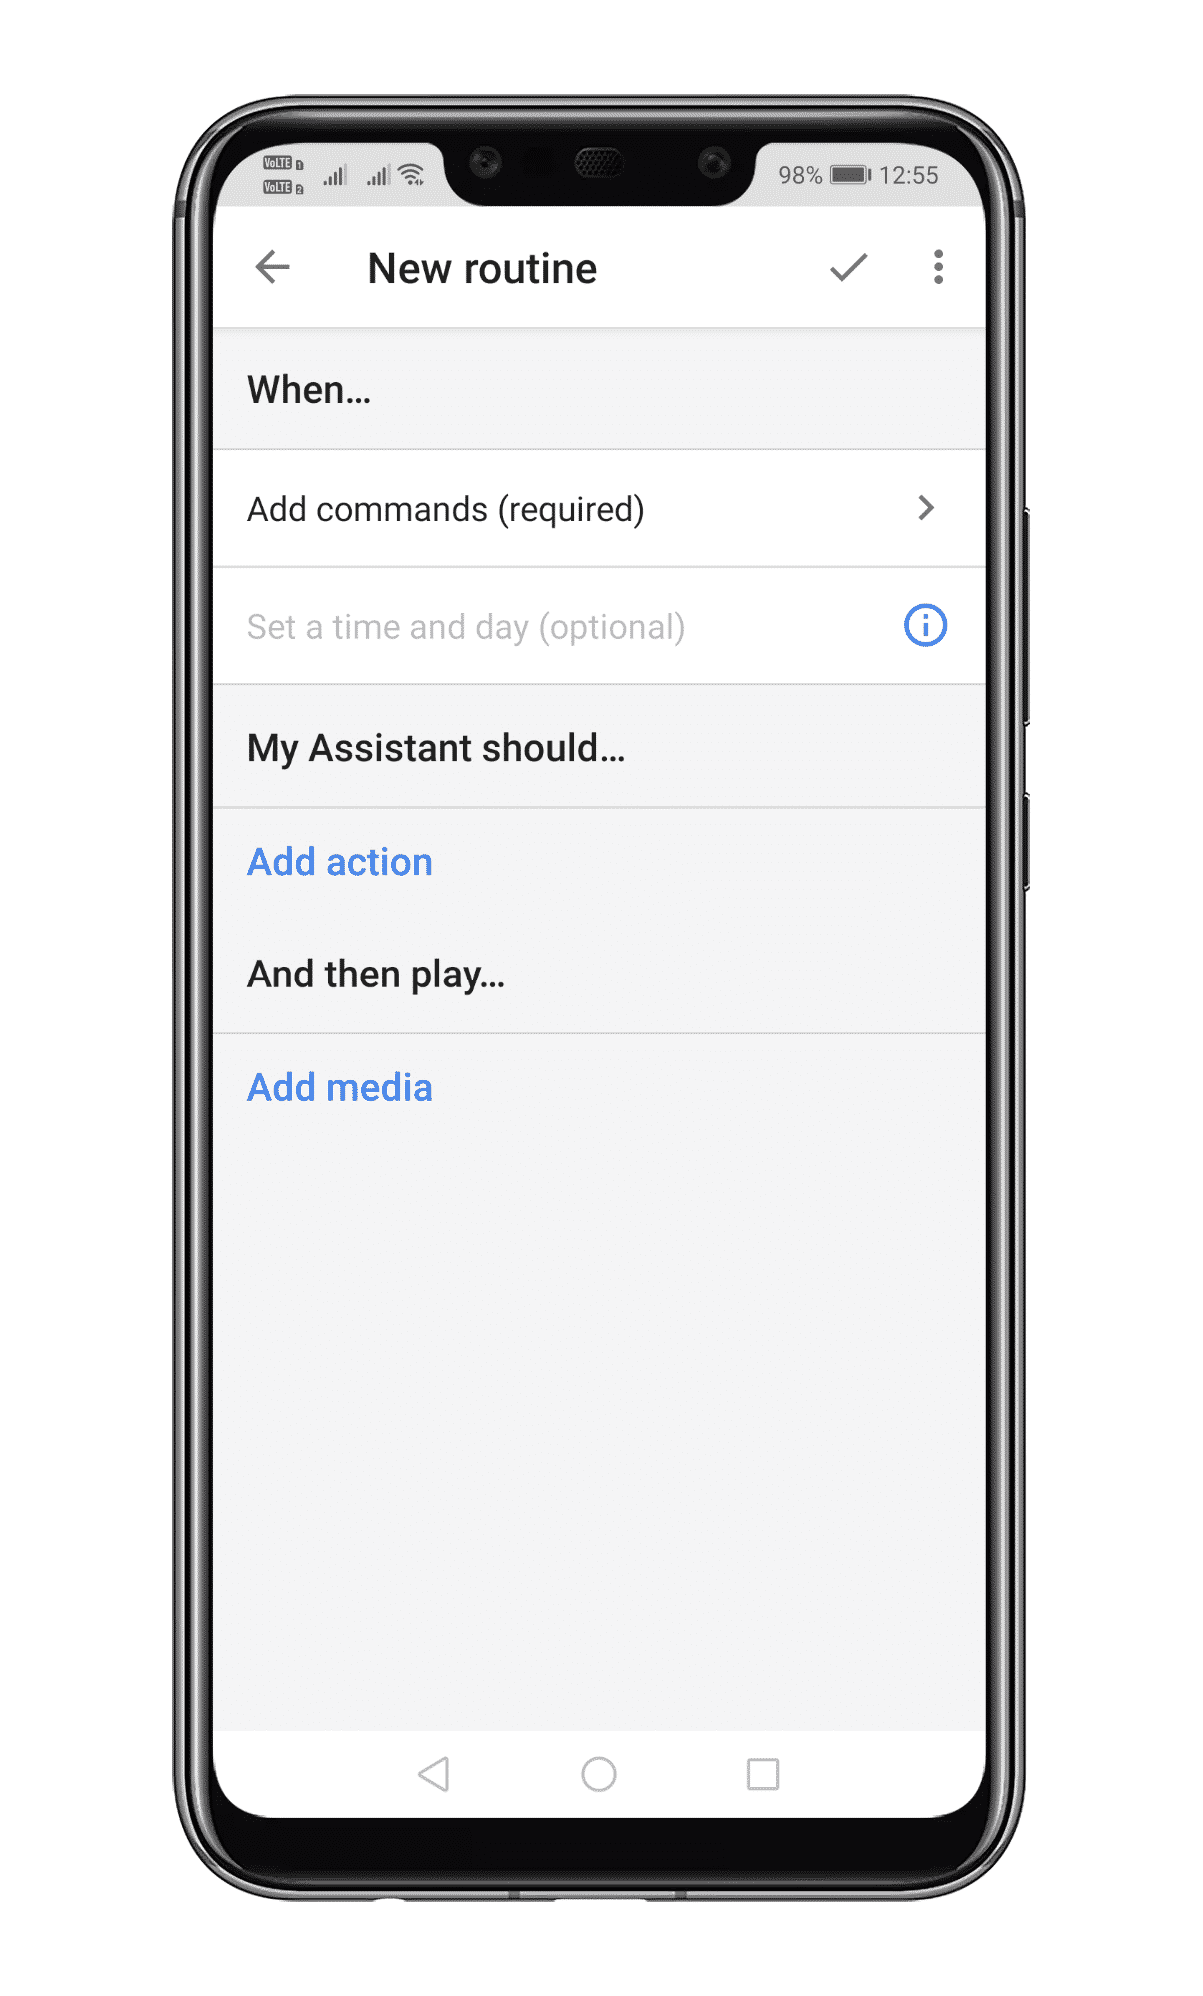 tap on the 'Add action' button to select the actions